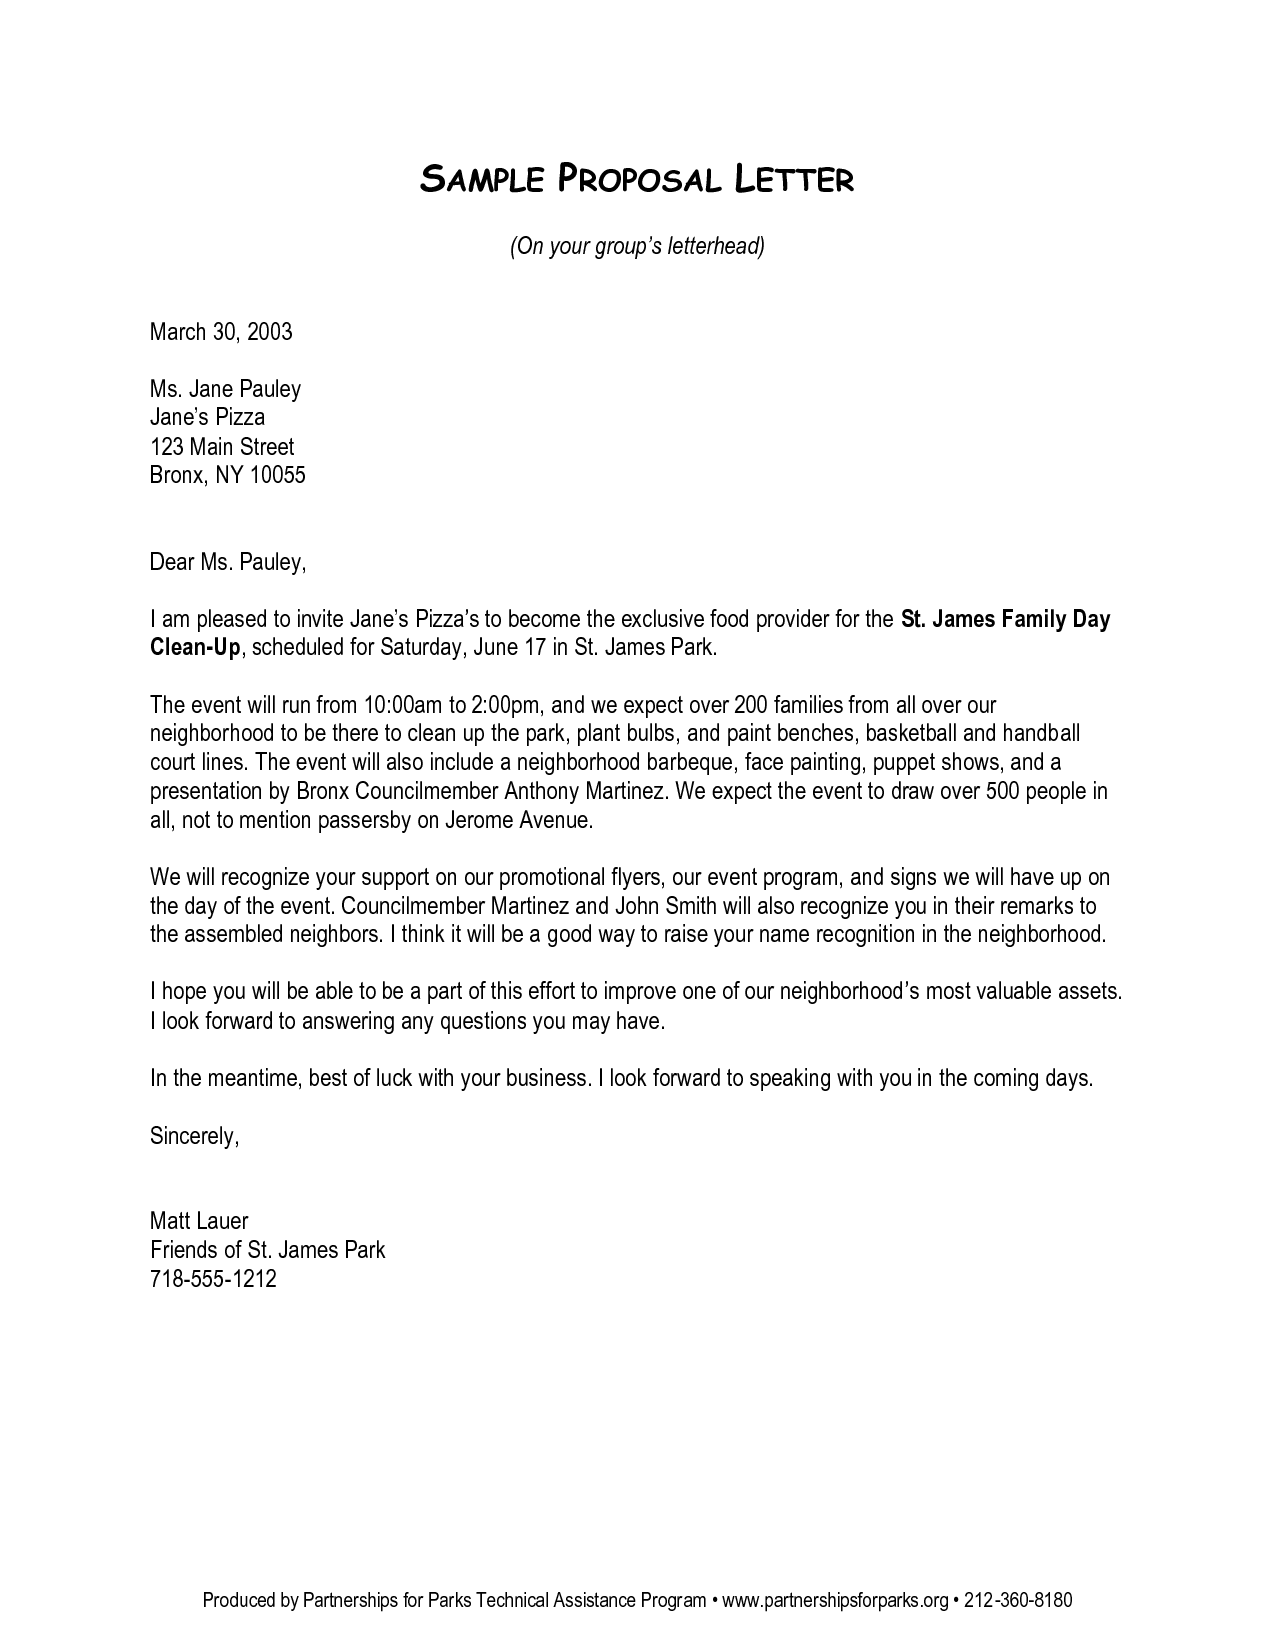 template of proposal letter Muck.greenidesign.co